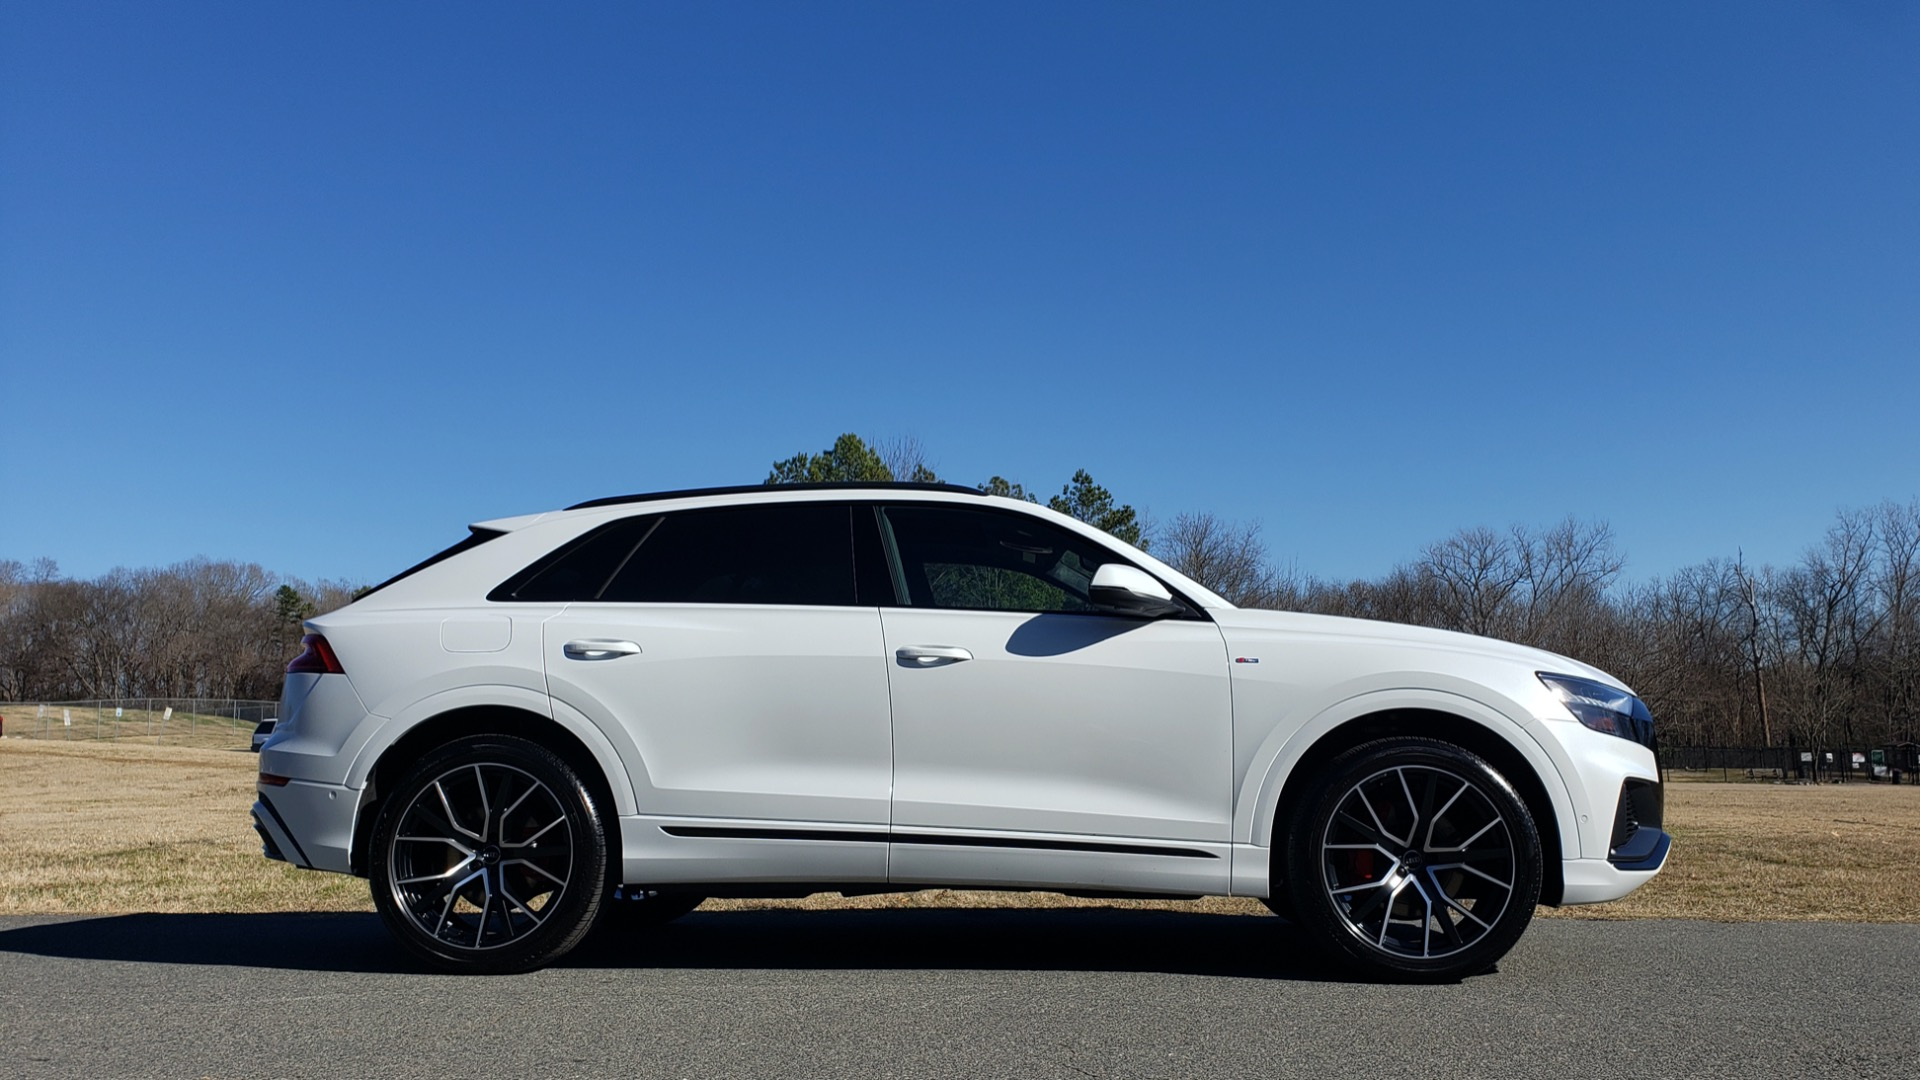 Used 2019 Audi Q8 PRESTIGE S-LINE / LUX PKG / ADAPT CHASSIS / YEAR ONE / CLD WTHR for sale Sold at Formula Imports in Charlotte NC 28227 12